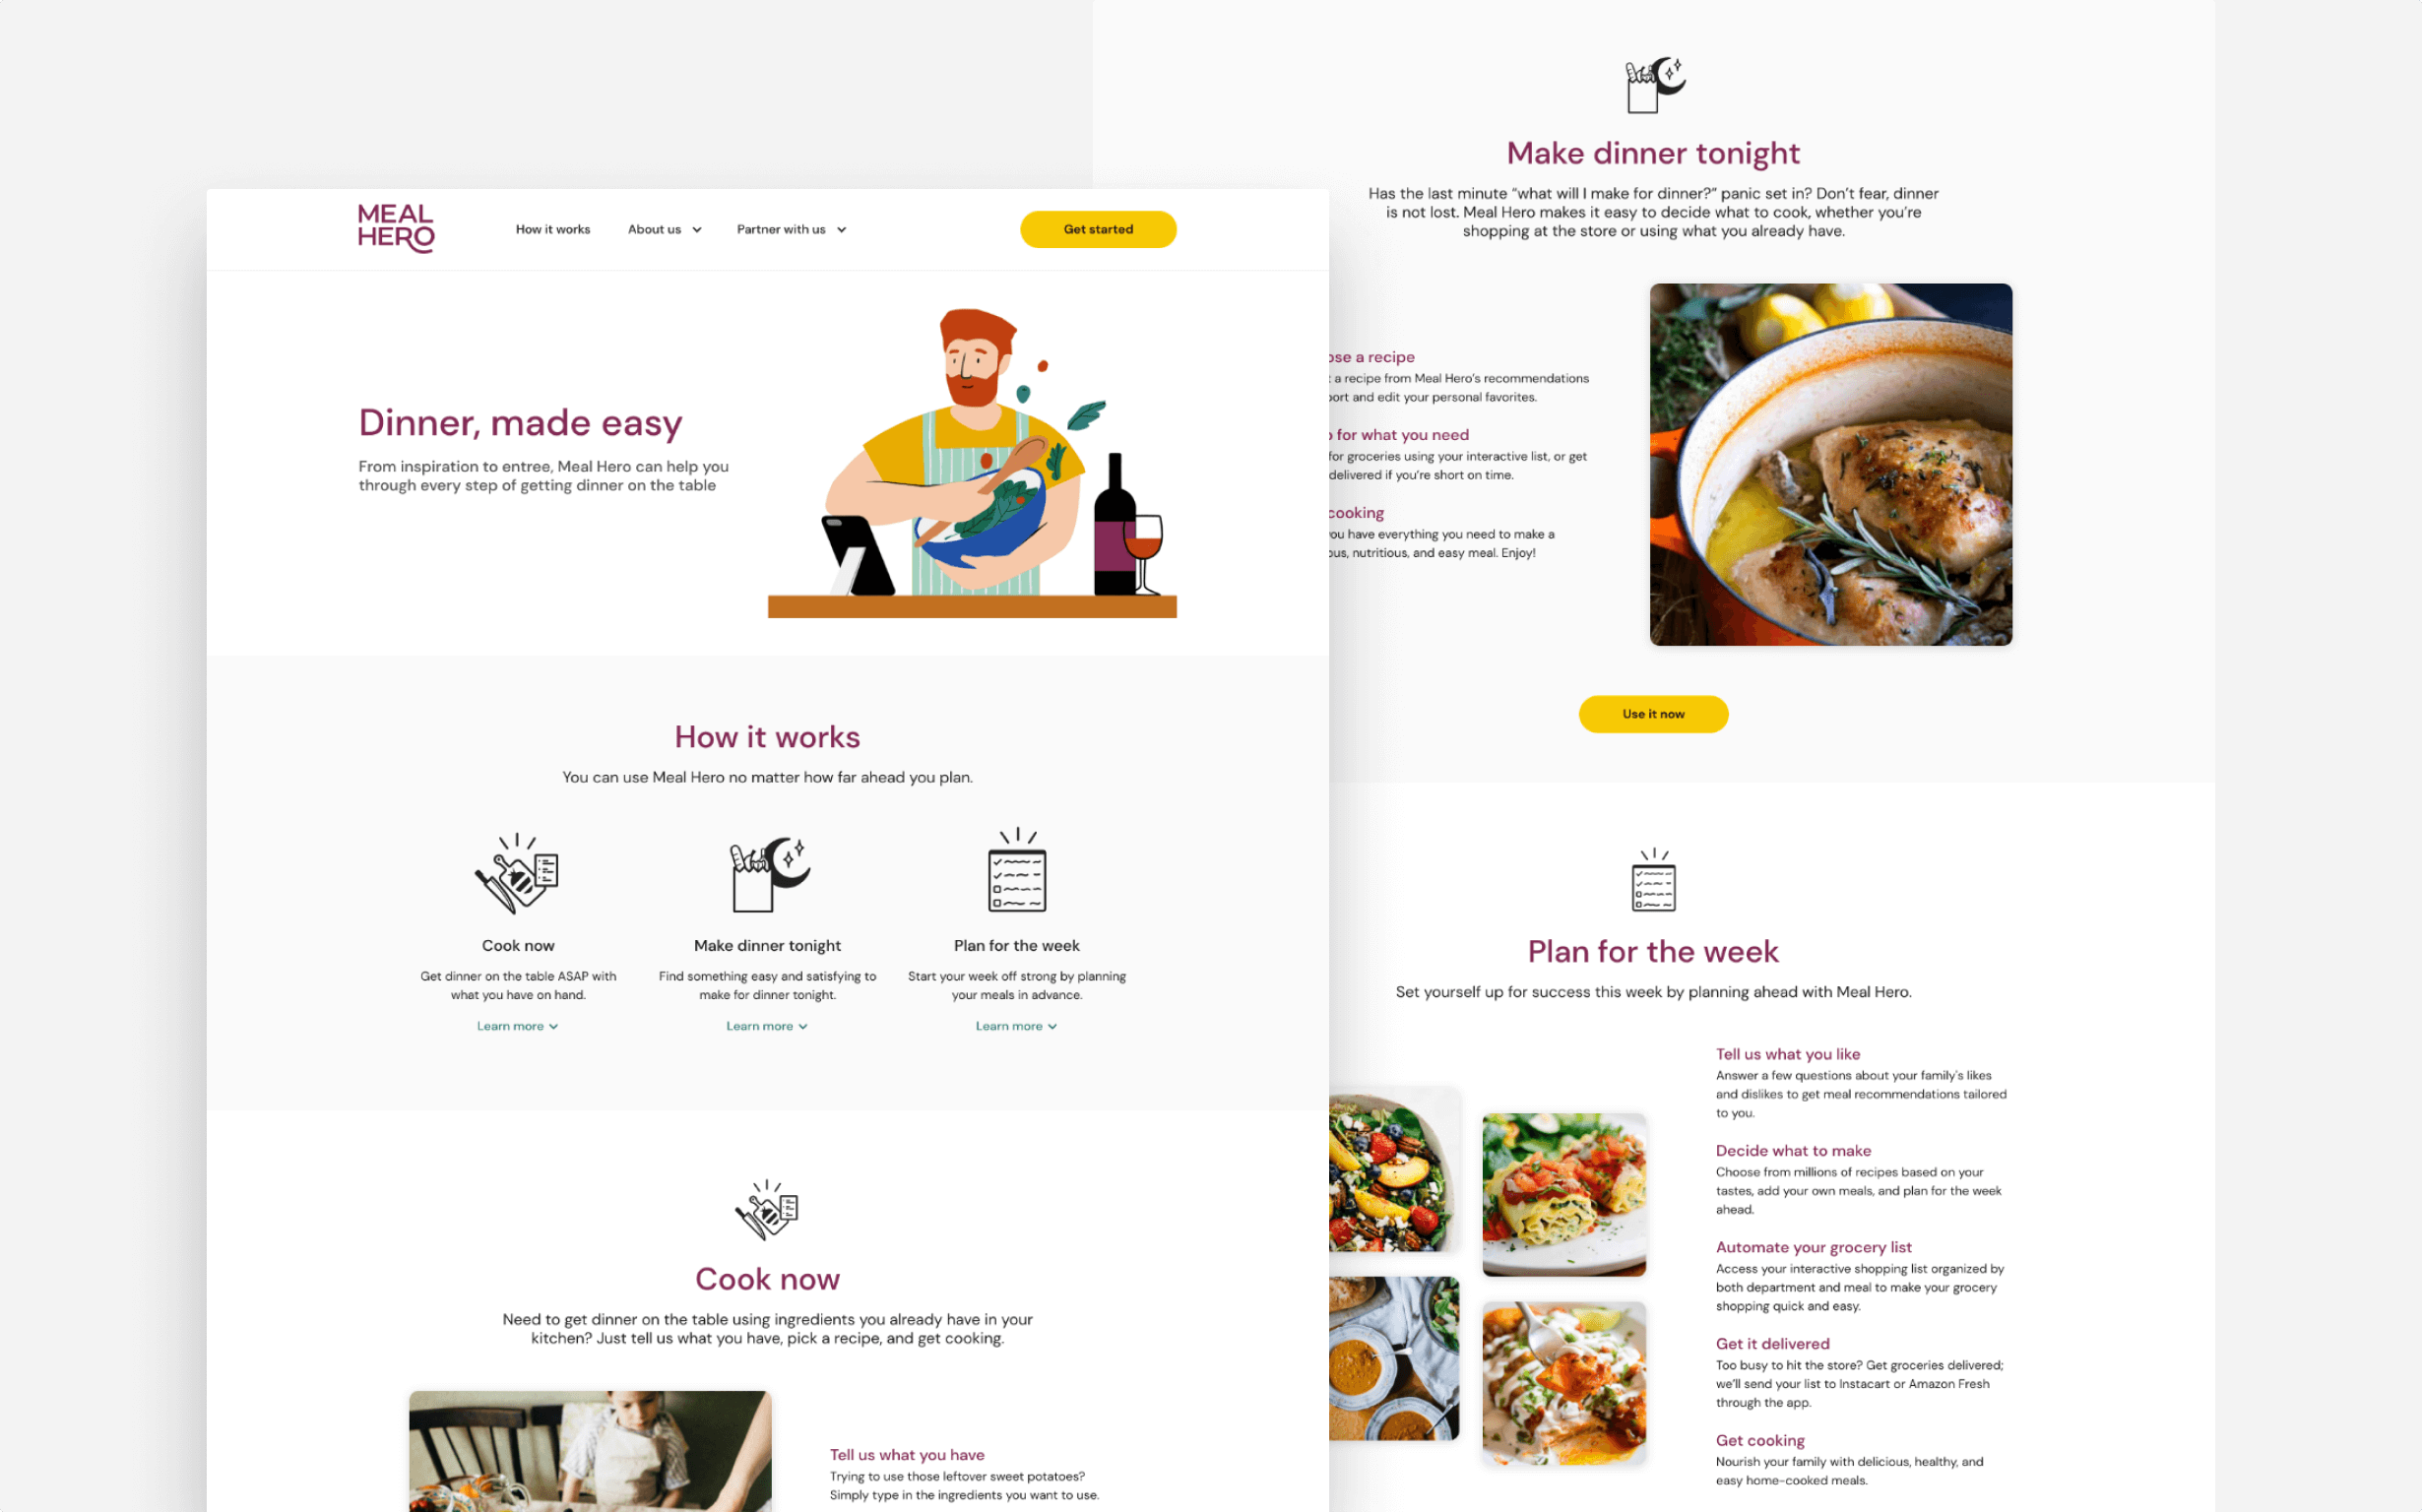 The How it Works page for Meal Hero's website provides more details about how to use the app.